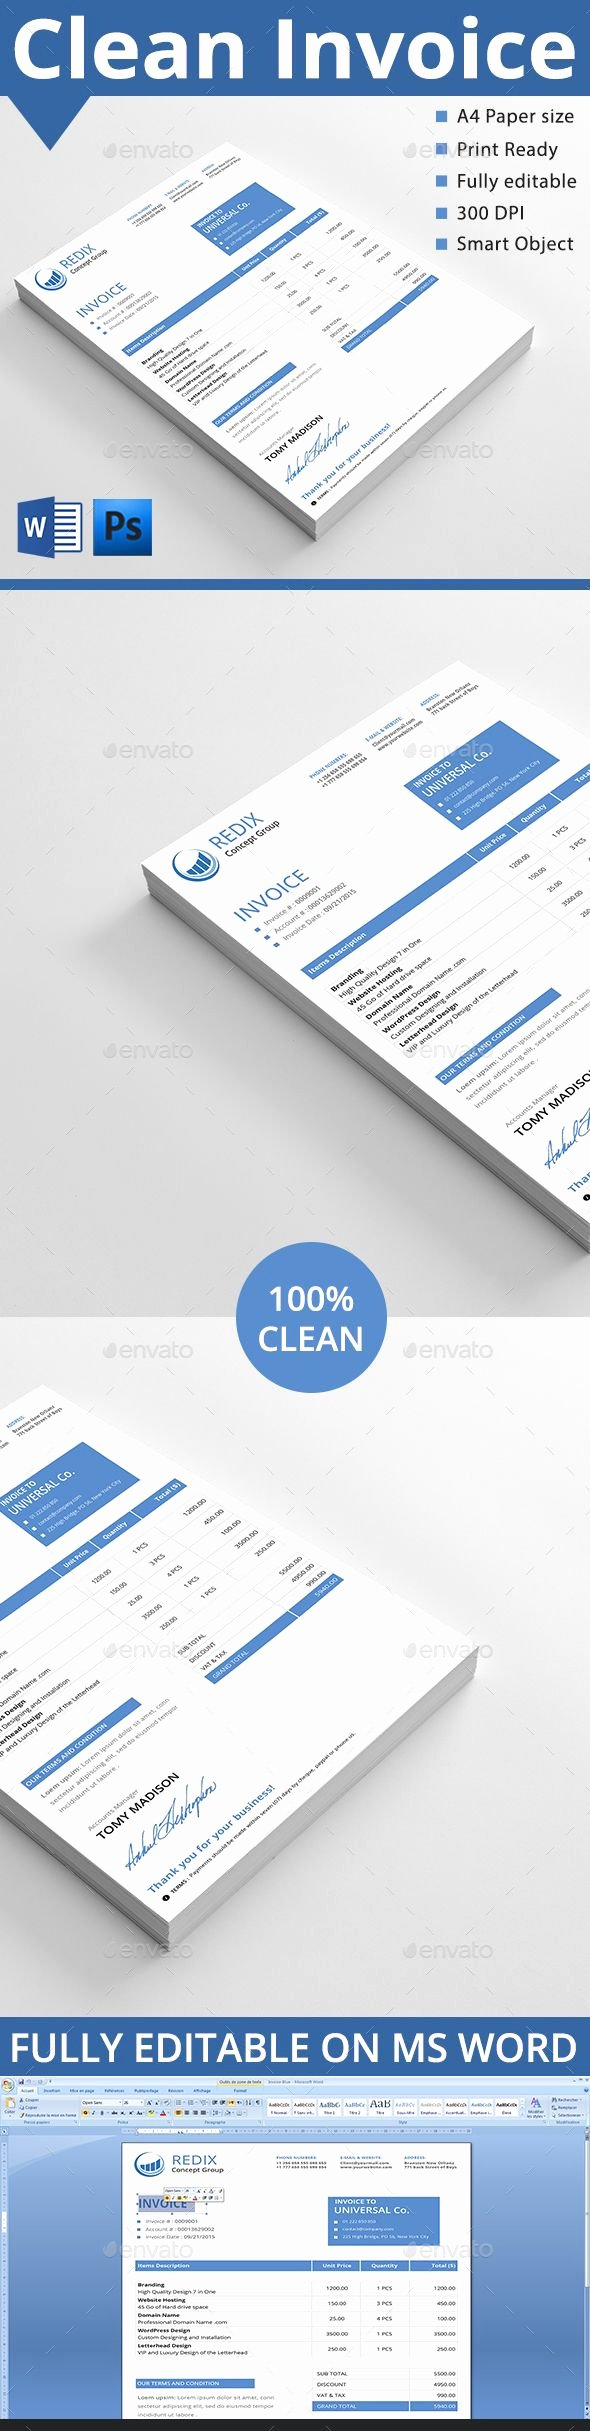 Graphic Design Quote Template Lovely Pin by Best Graphic Design On Proposal & Invoice Templates